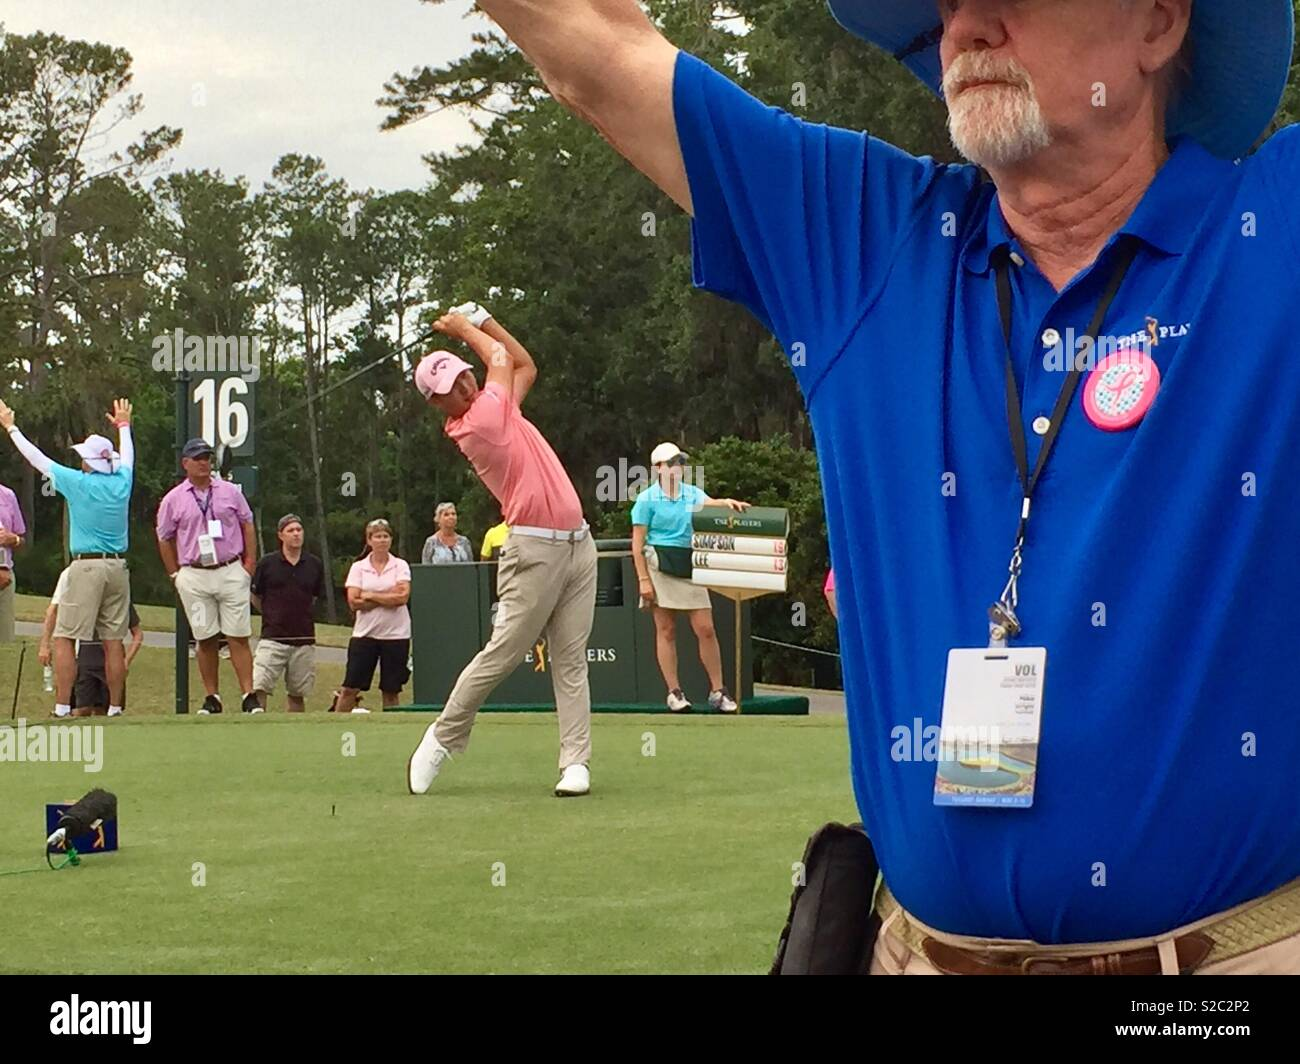 Danny Lee teeing off from the 16th hole at TPC Sawgrass during The Players 2018 Championship Tournament in Ponte Vedra Beach, Florida. (USA) - Stock Image